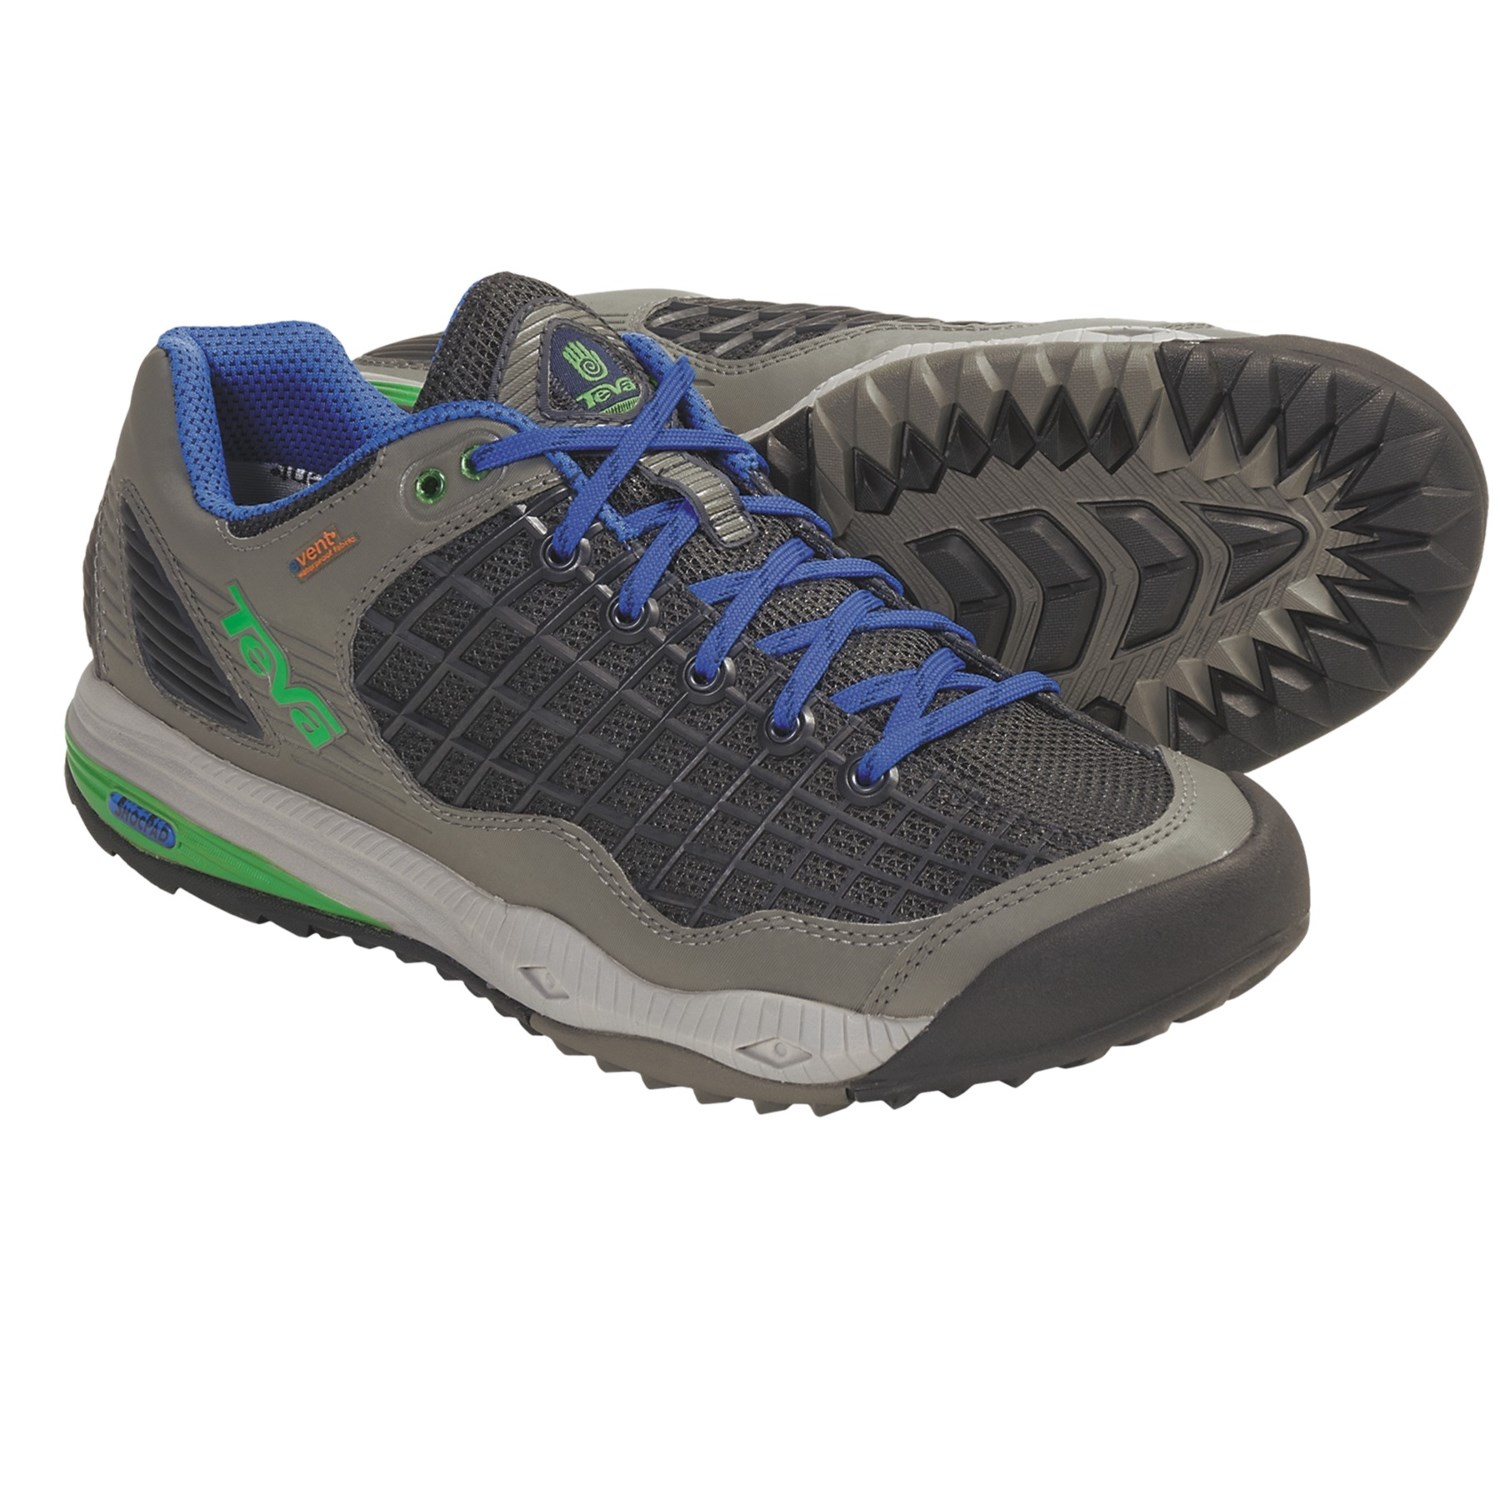 d420eec19507 Teva Reforge eVent® Trail Shoes (For Men) 5703A 40 on PopScreen